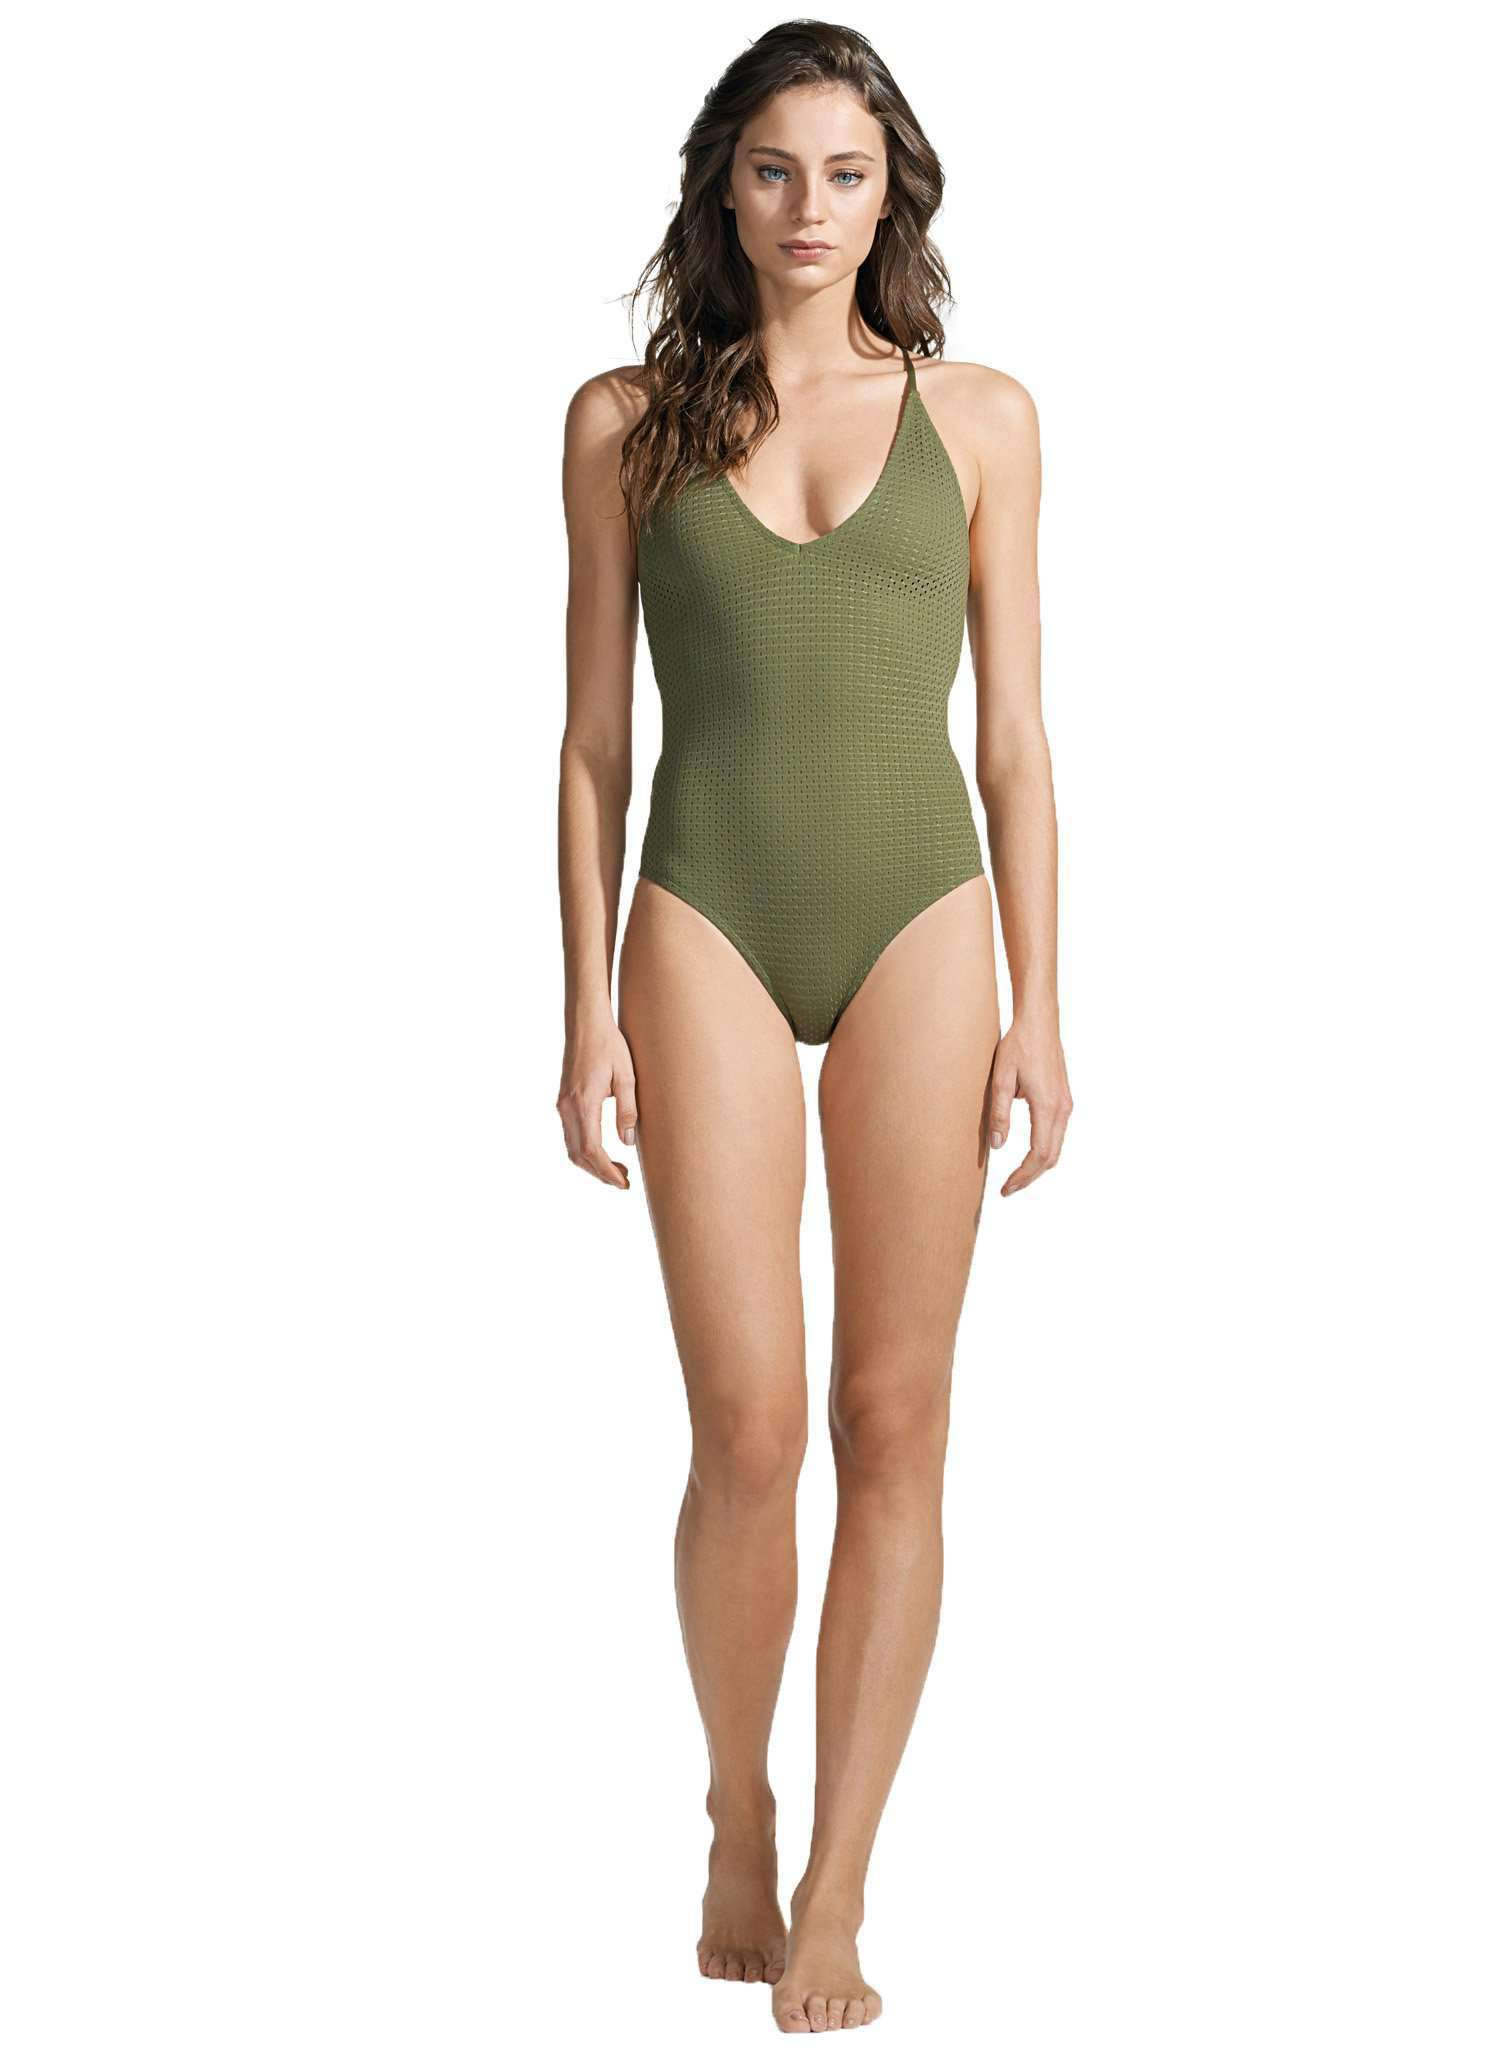 LACES ONE PIECE - PERFORATED LYCRA